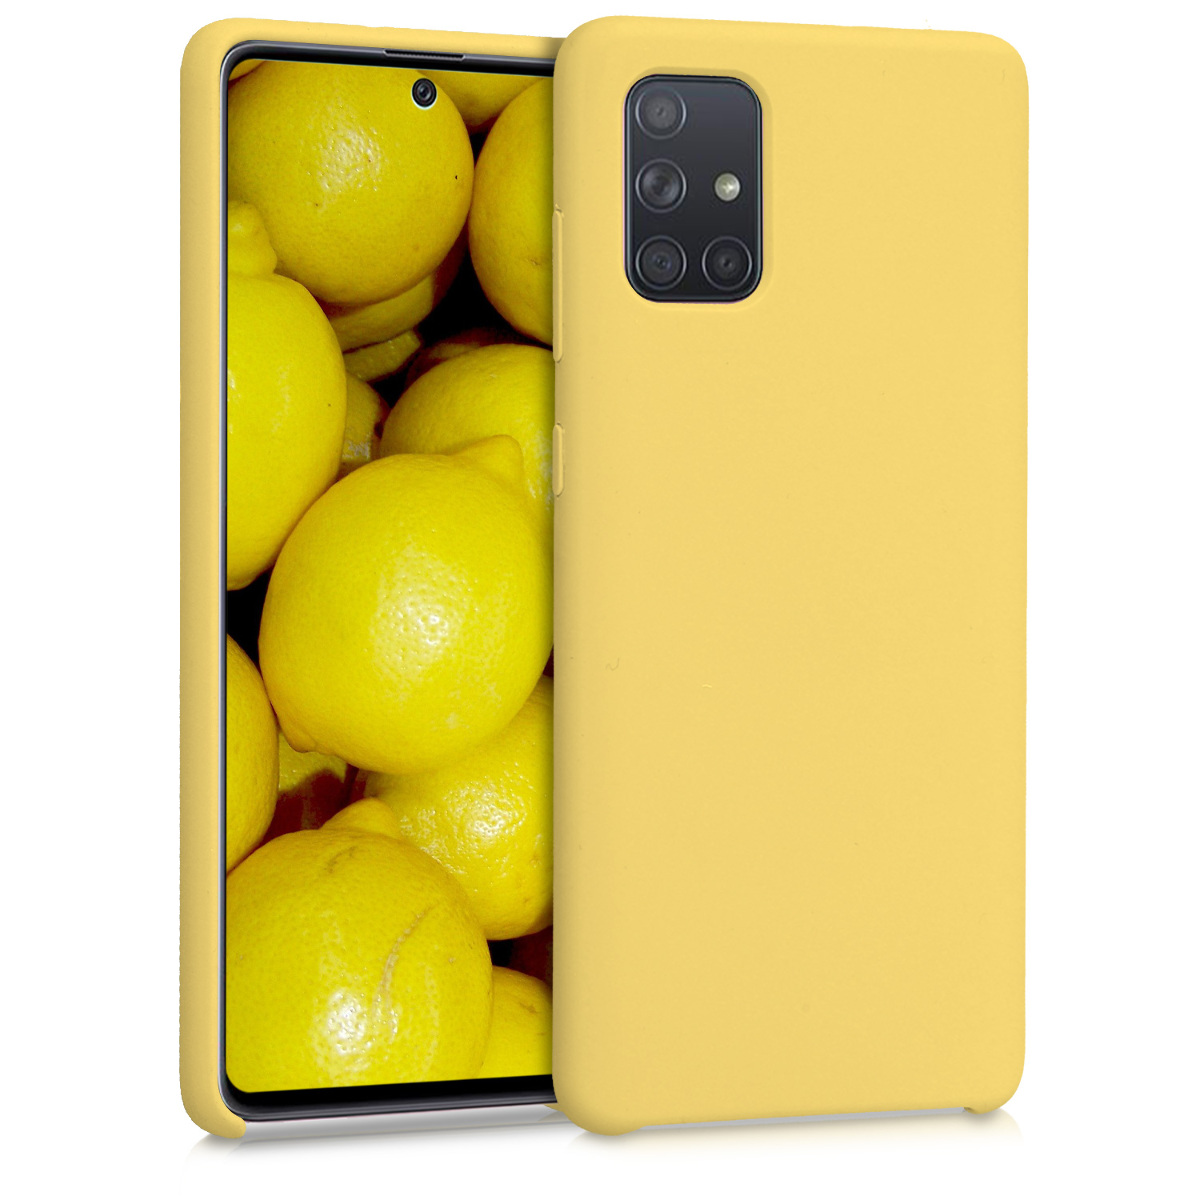 KW Θήκη Σιλικόνης Samsung Galaxy A71 - Soft Flexible Rubber Protective Cover - Yellow Matte (51209.49)